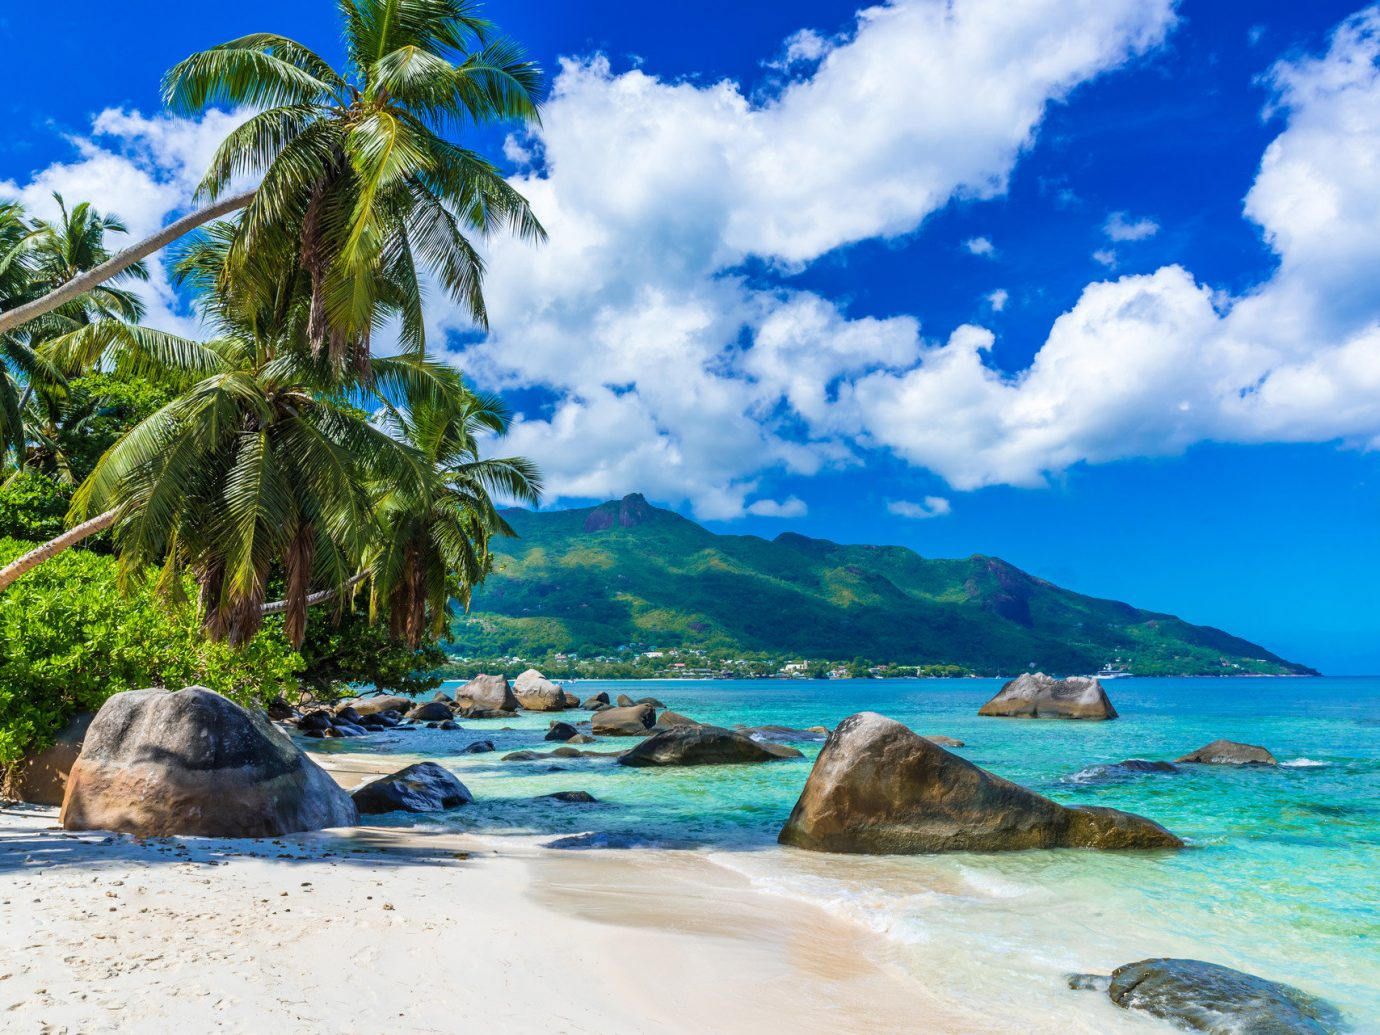 Trip Ideas sky tree outdoor water Beach Nature shore Coast landform geographical feature Sea body of water caribbean Ocean vacation tropics bay islet Island cove Lagoon arecales cape Pool rock swimming sandy